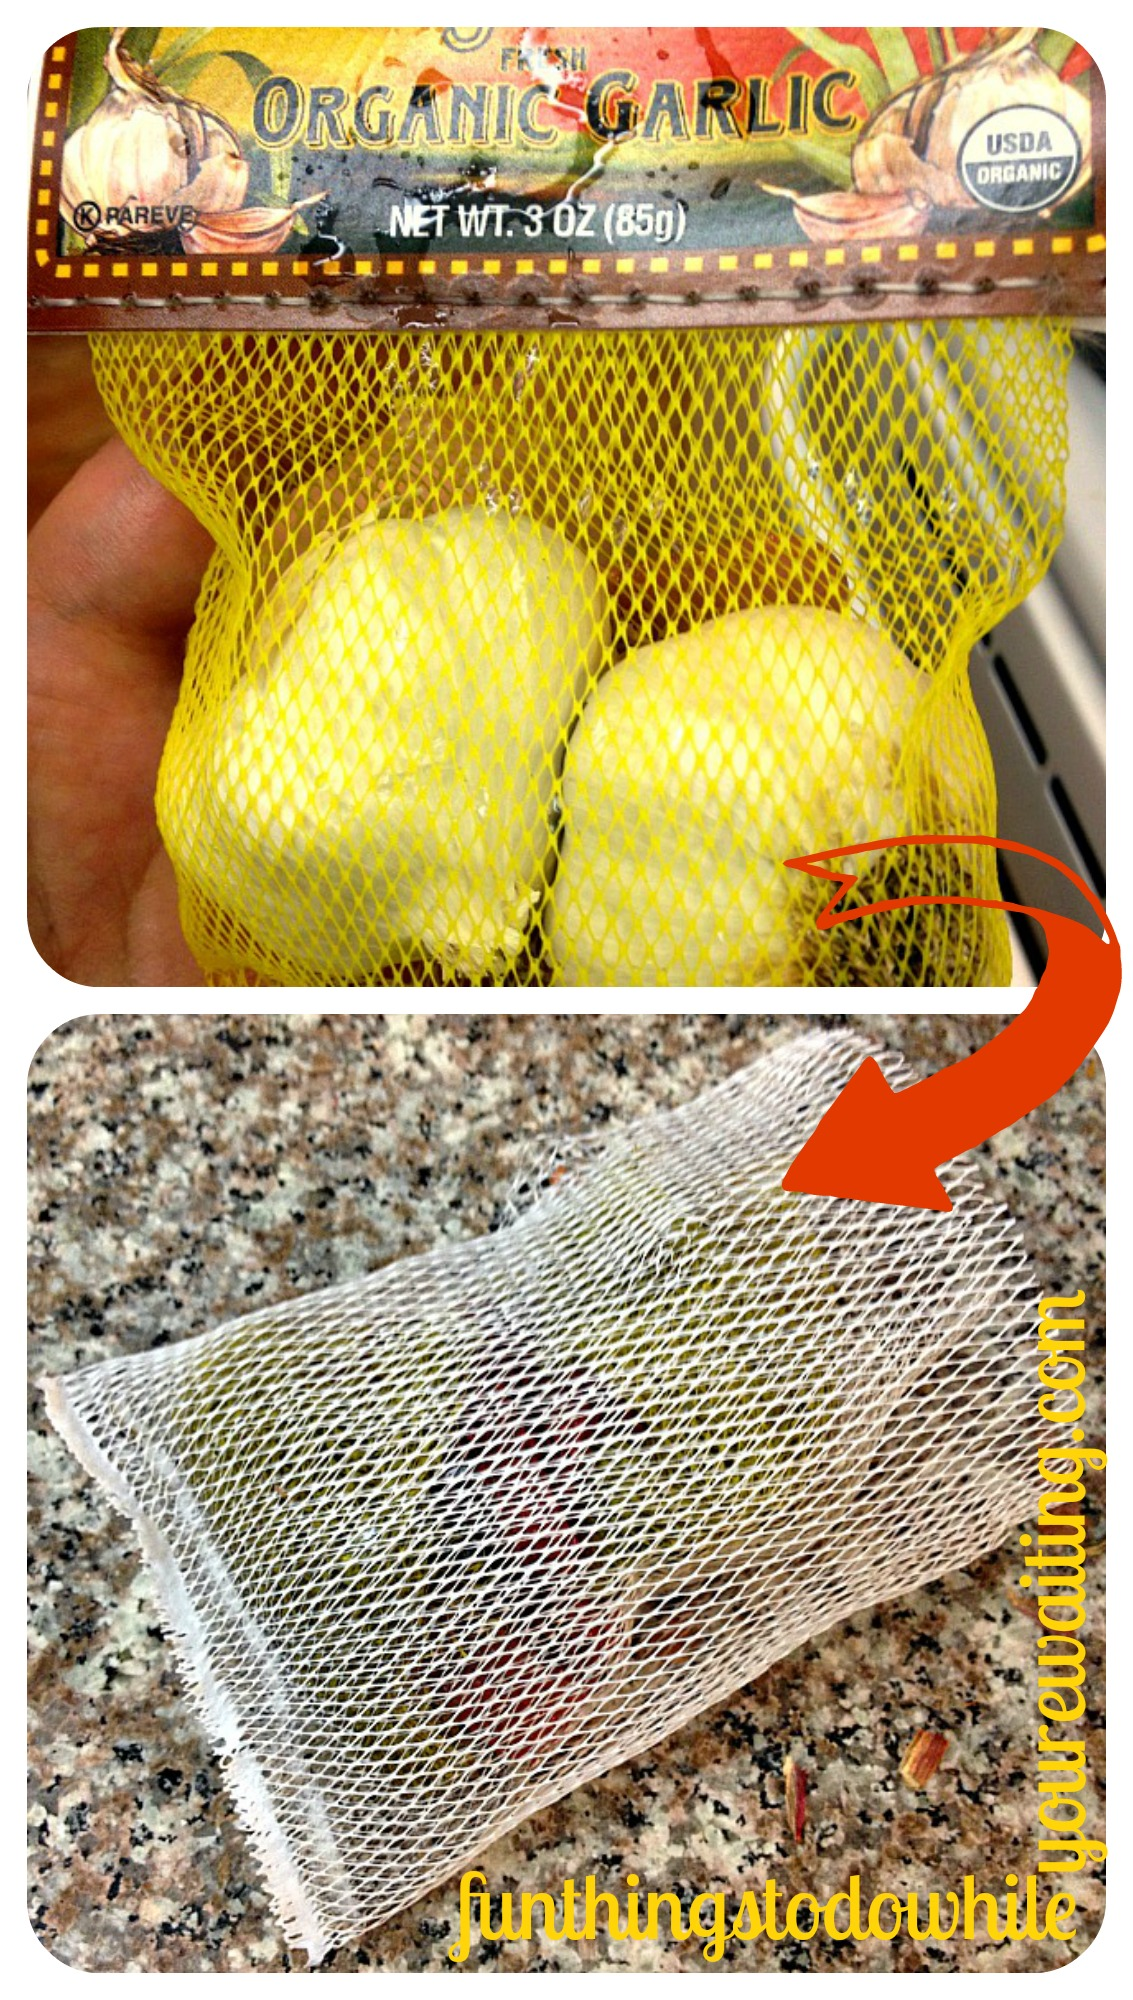 Turning Netted Produce bags into Dish Scrubbers.